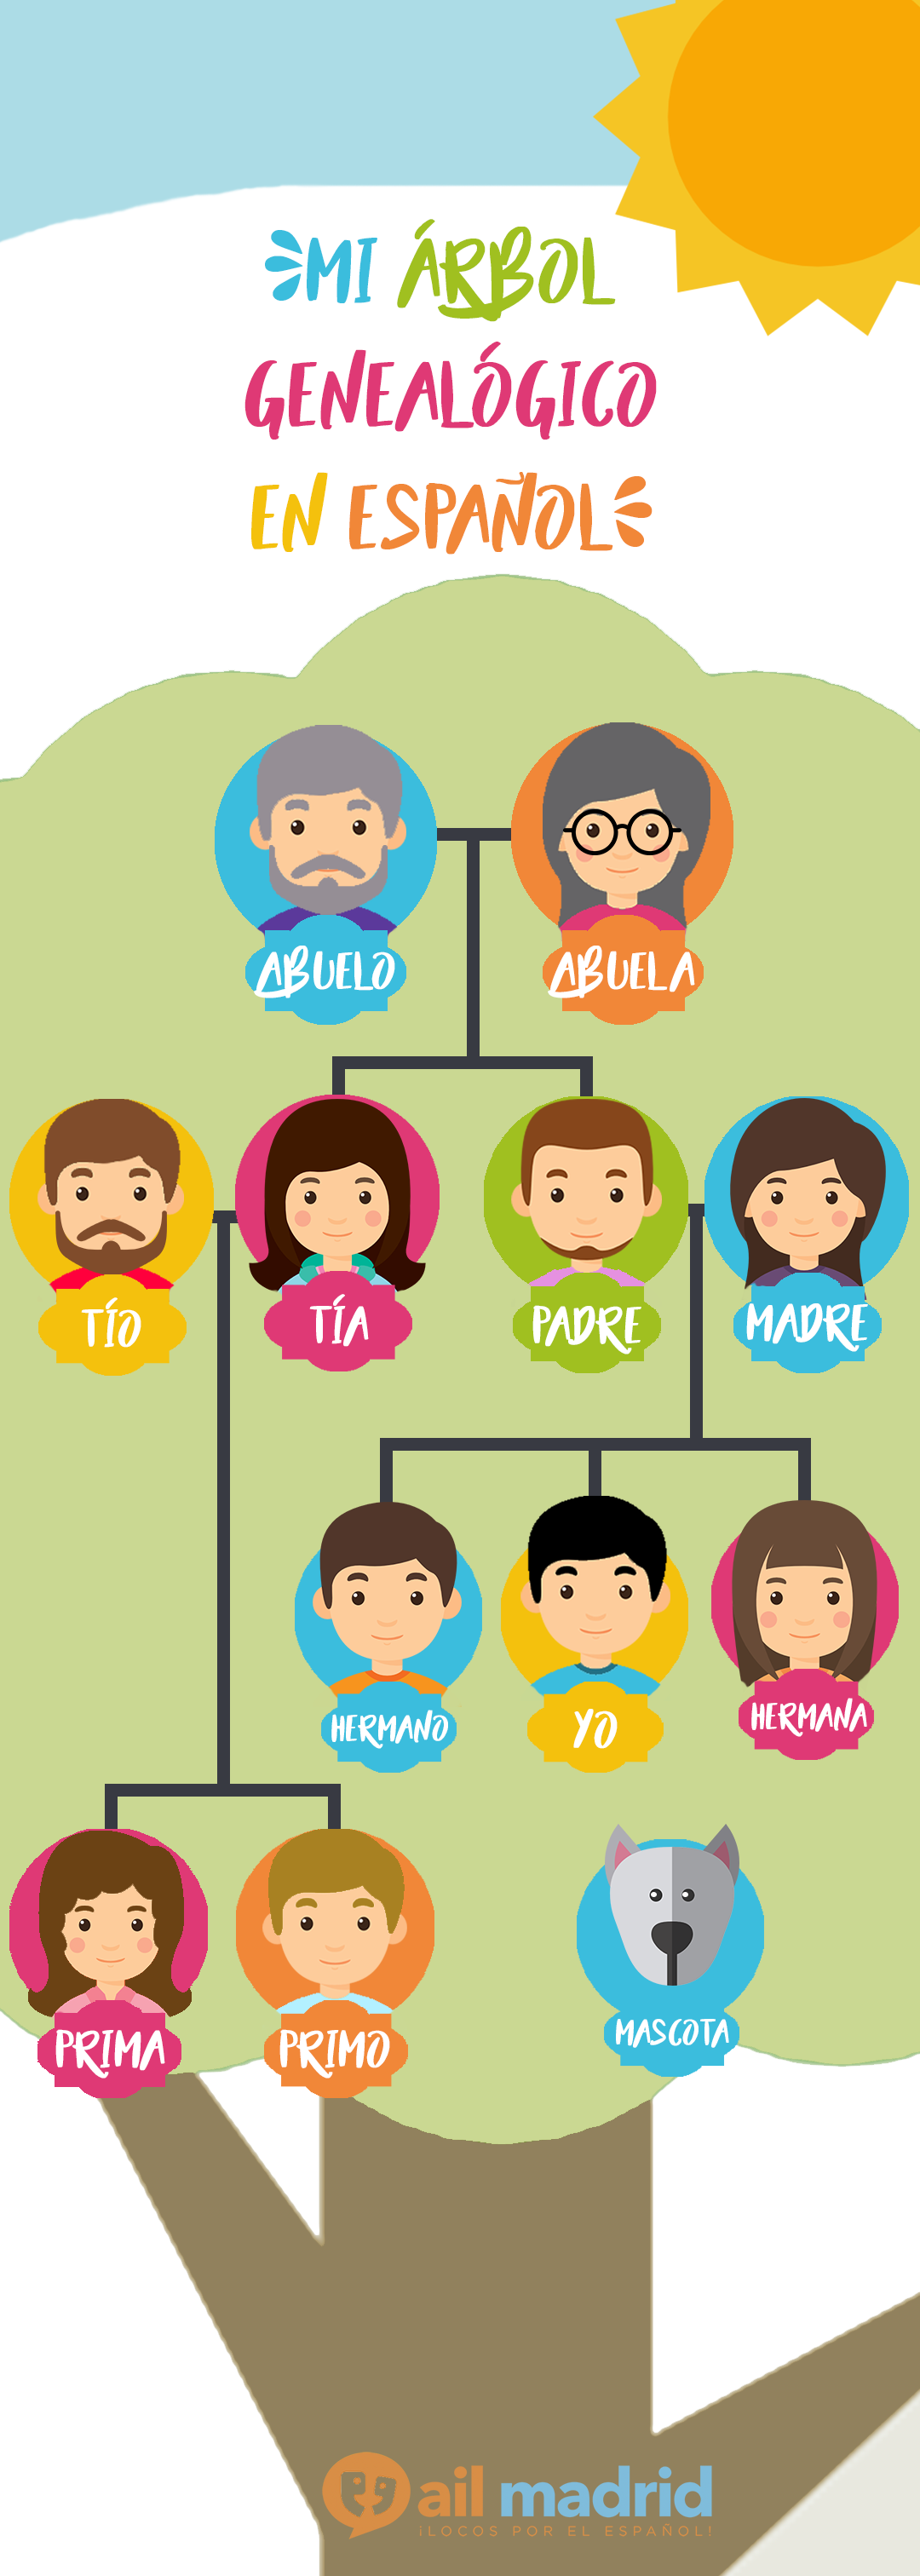 Here You Have Some Family Vocabulary To Keep Improving